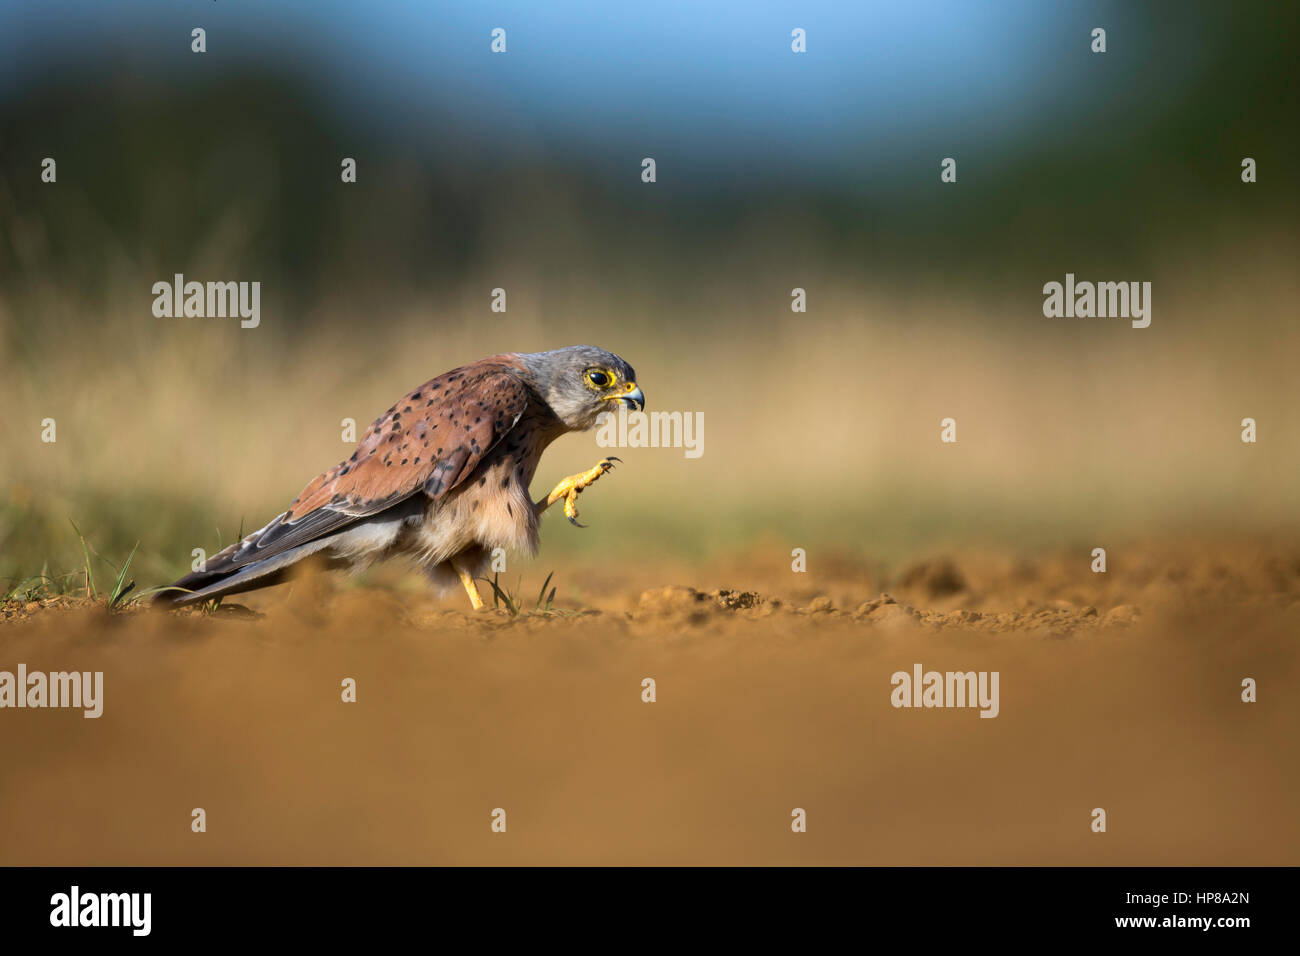 A close encounter with a male kestrel in Richmond Park - Stock Image